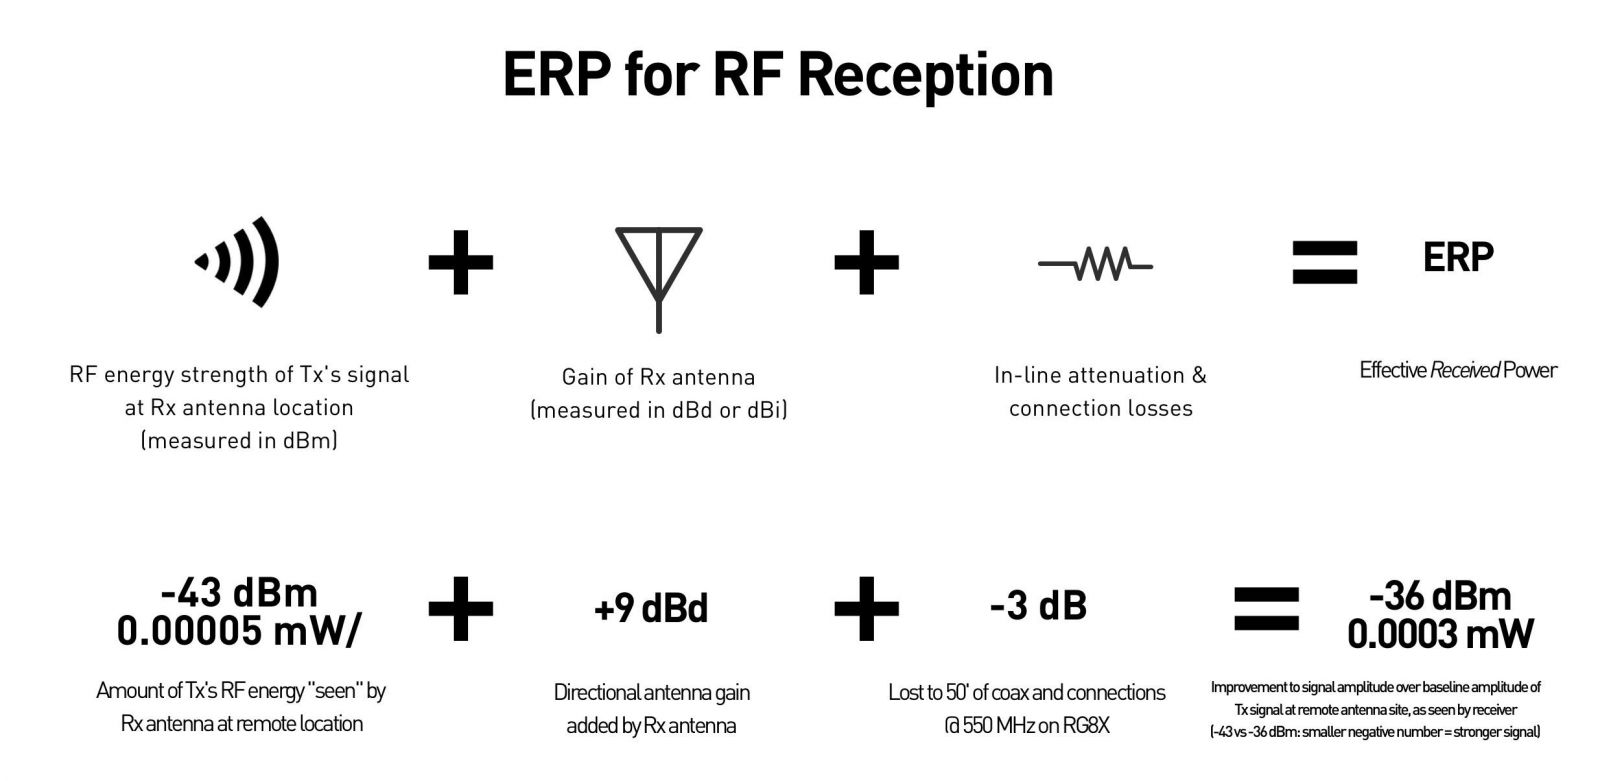 ERp for RF Reception